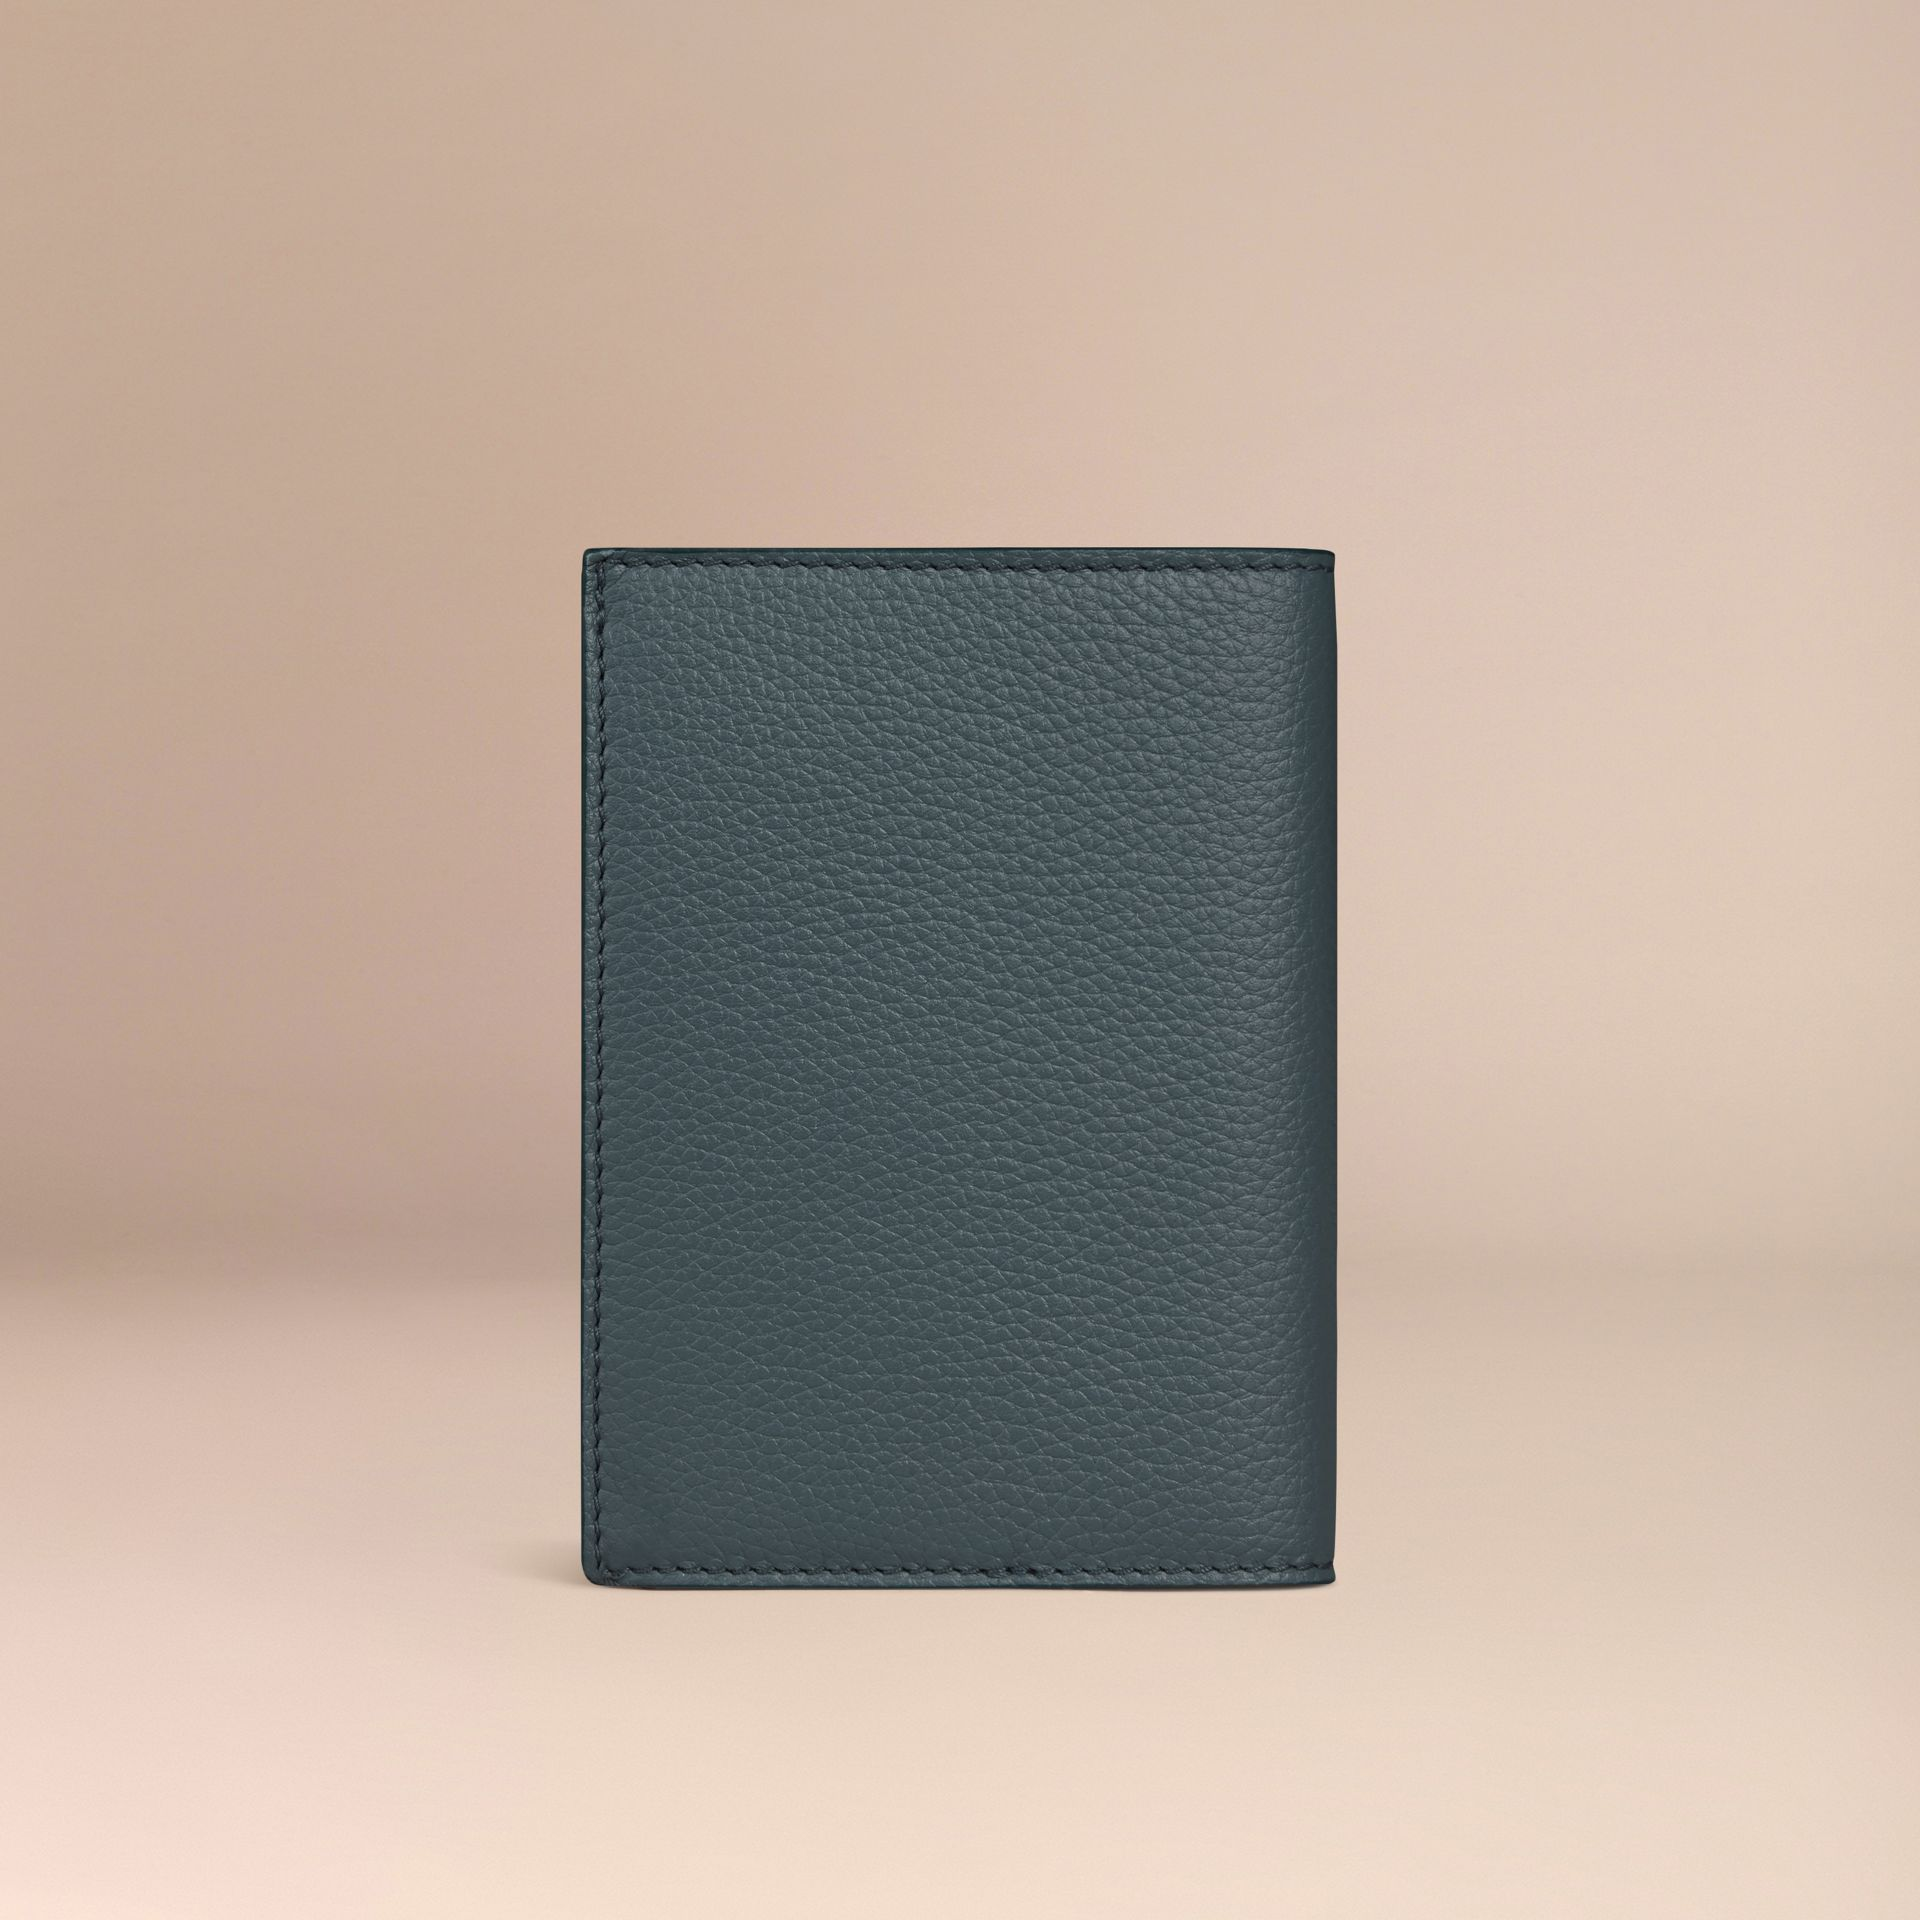 Grainy Leather Passport Cover in Dusty Teal - gallery image 3